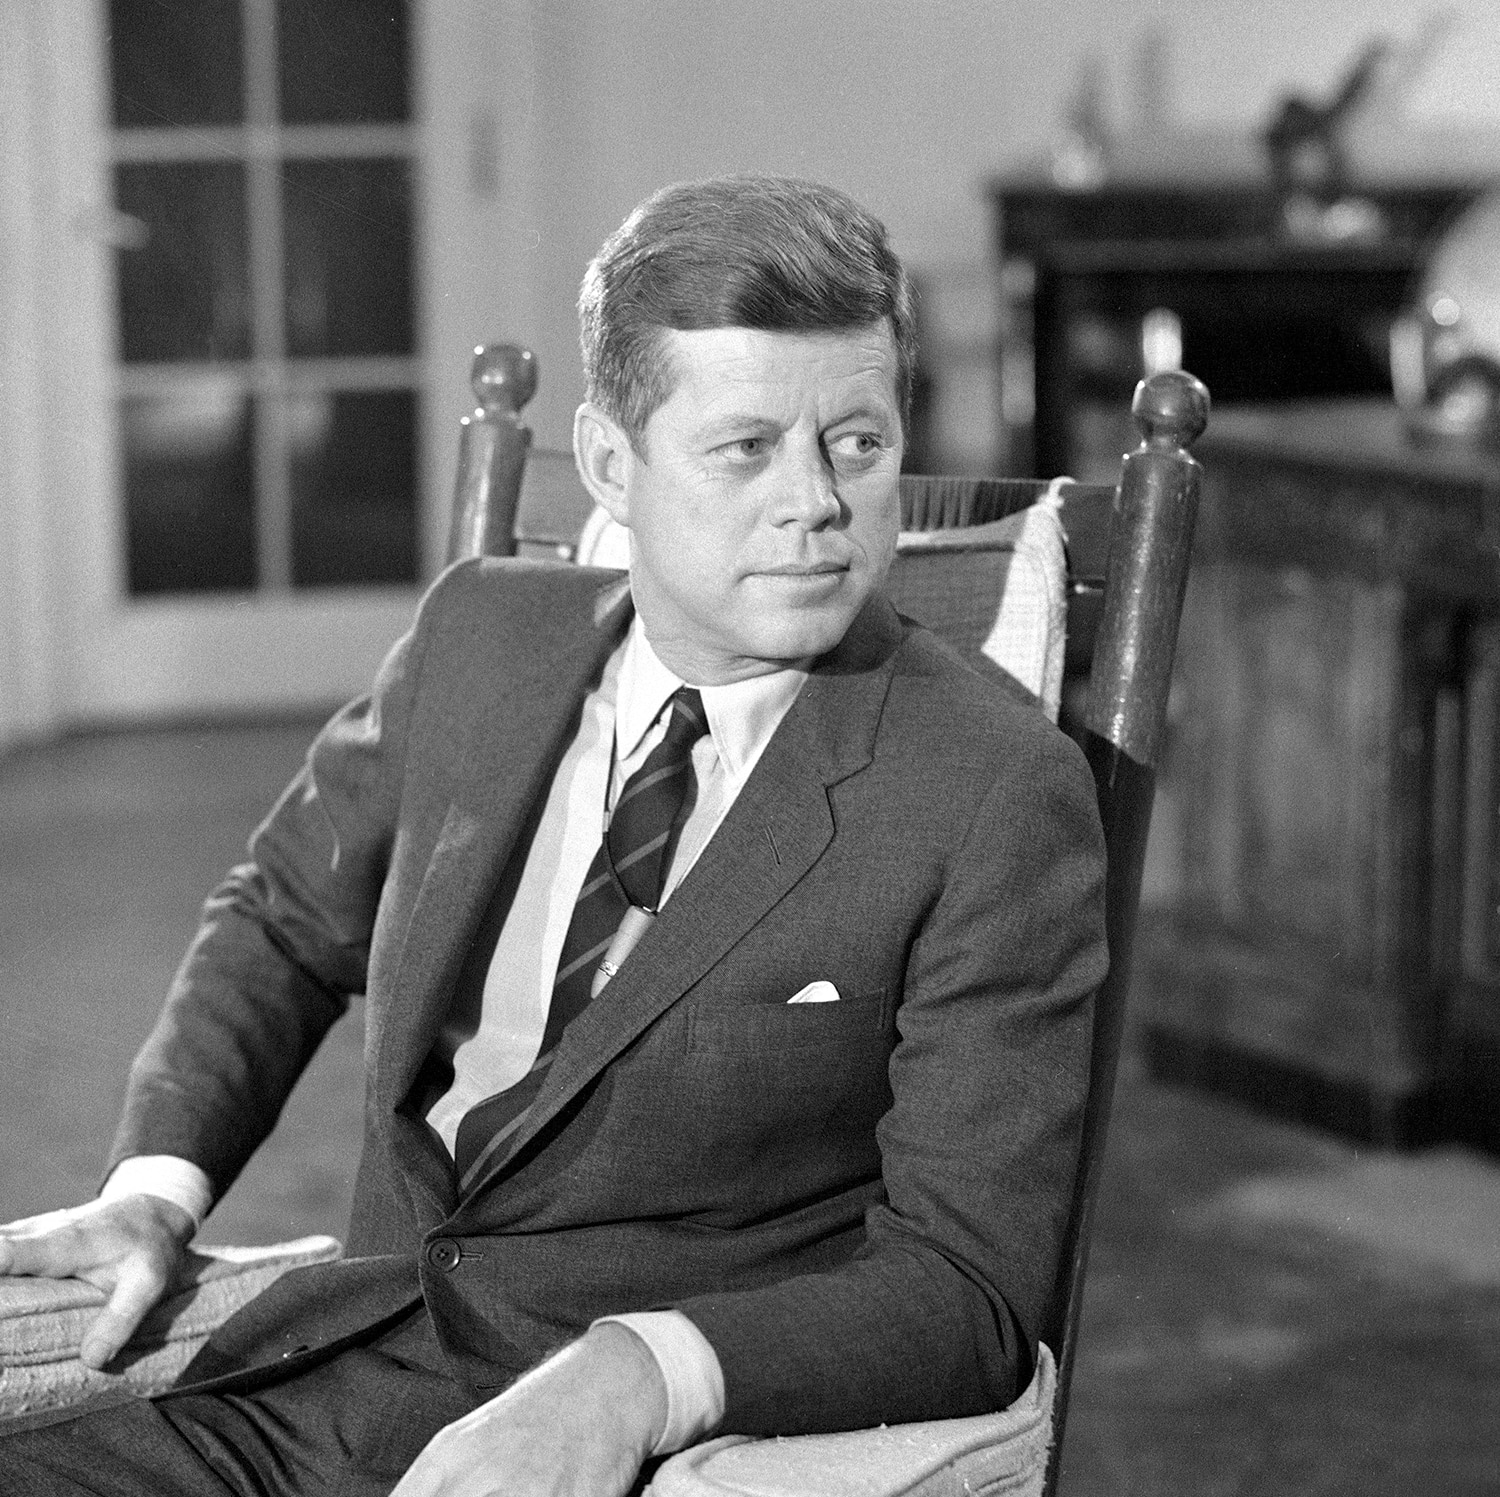 John F. Kennedy - Statesman, military commander, and advocate of close-cropped sides and full-on side swoop.Photo by:CBS Photo Archive/Getty Image